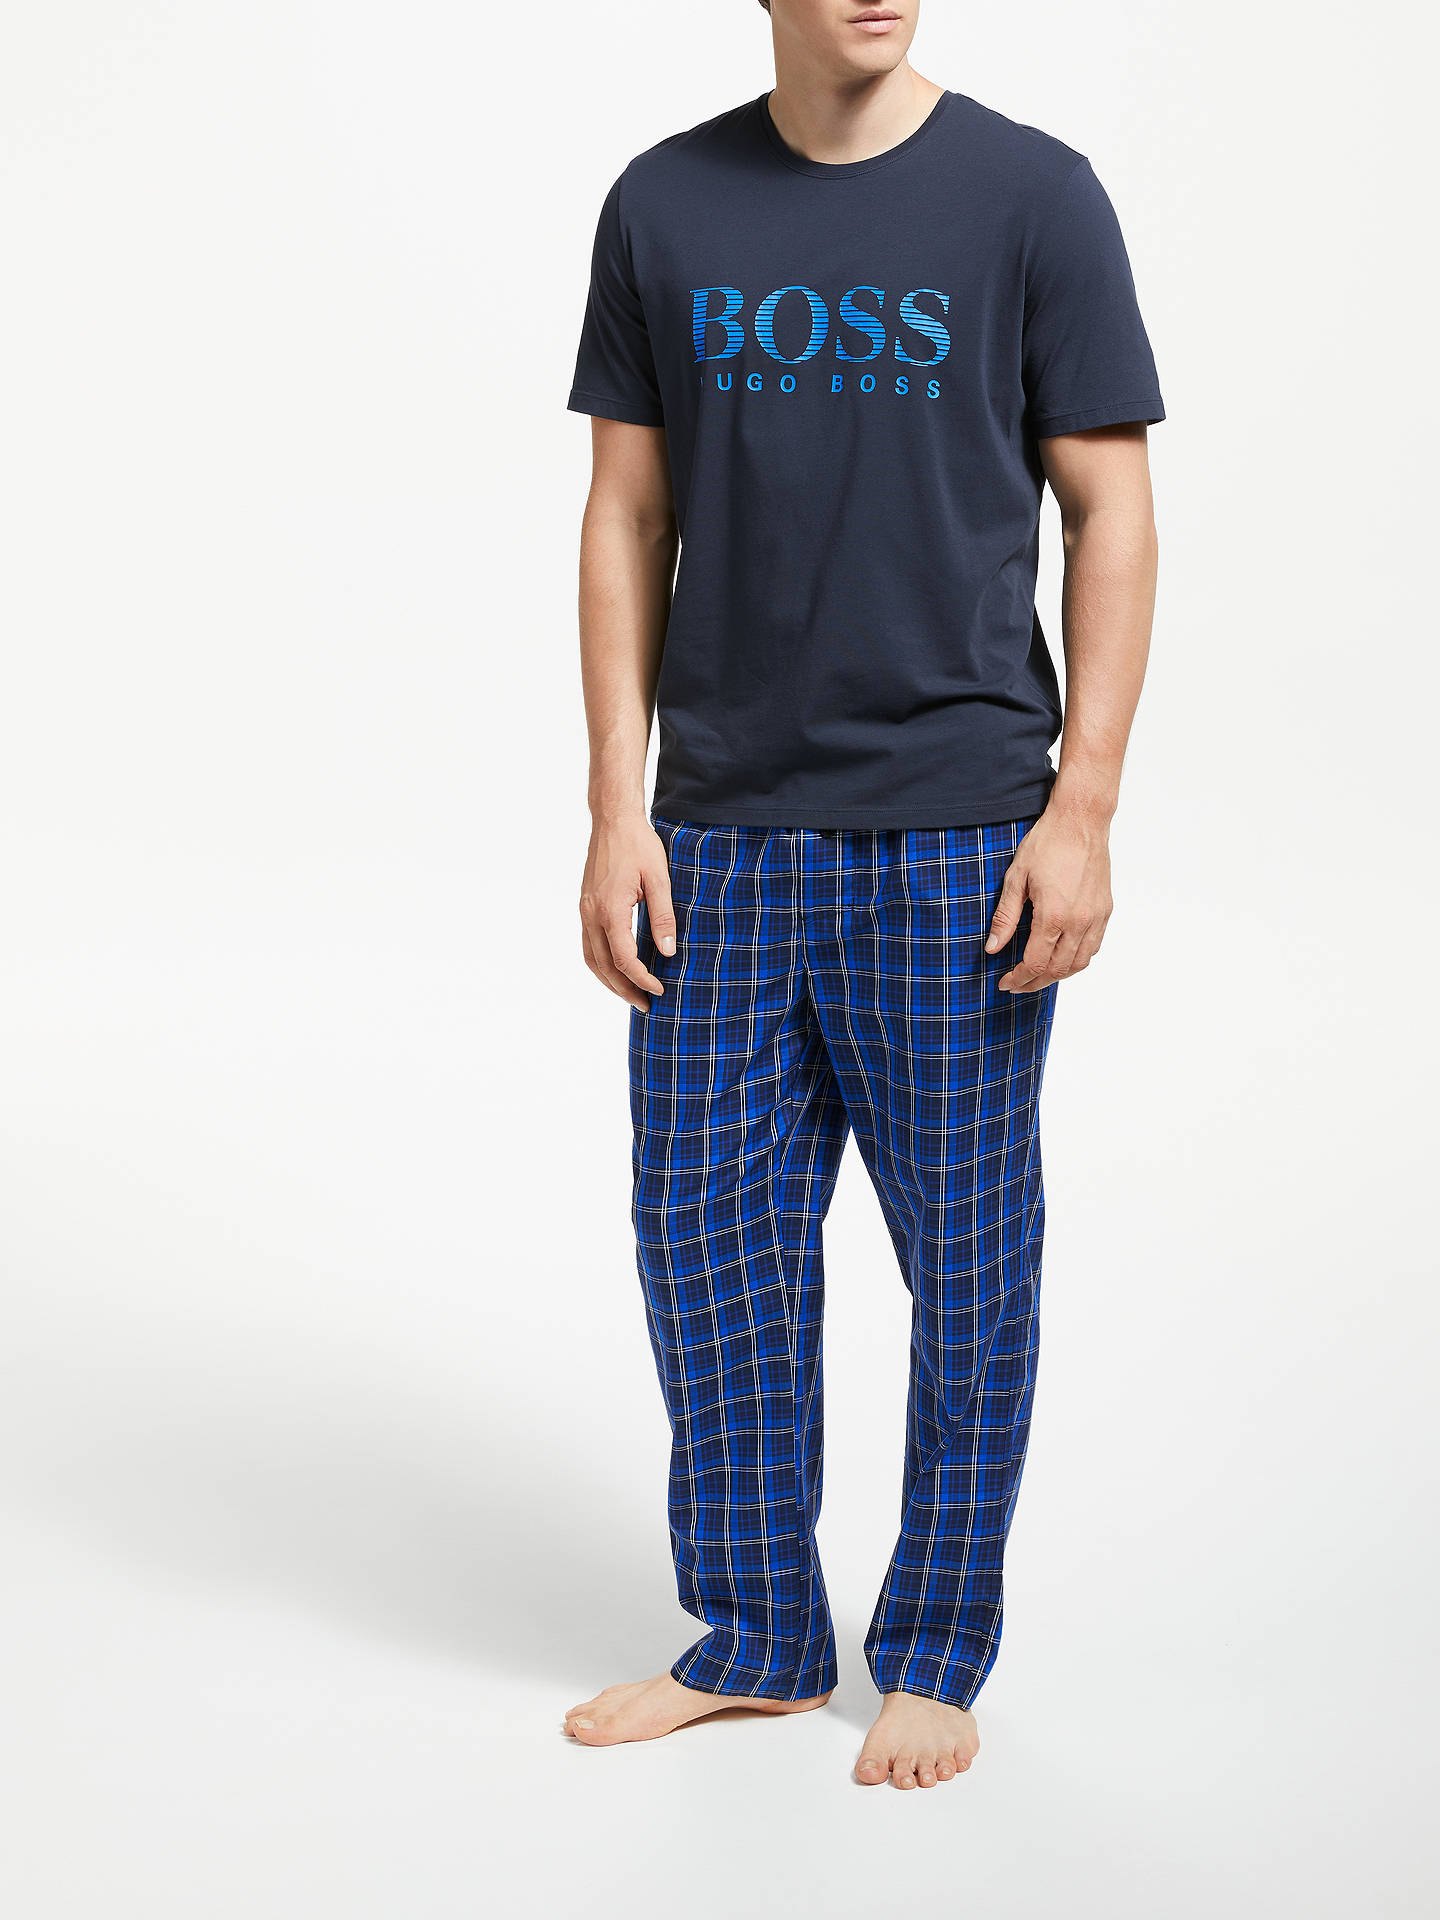 BuyBOSS Check Twill Lounge Pants, Blue, L Online at johnlewis.com